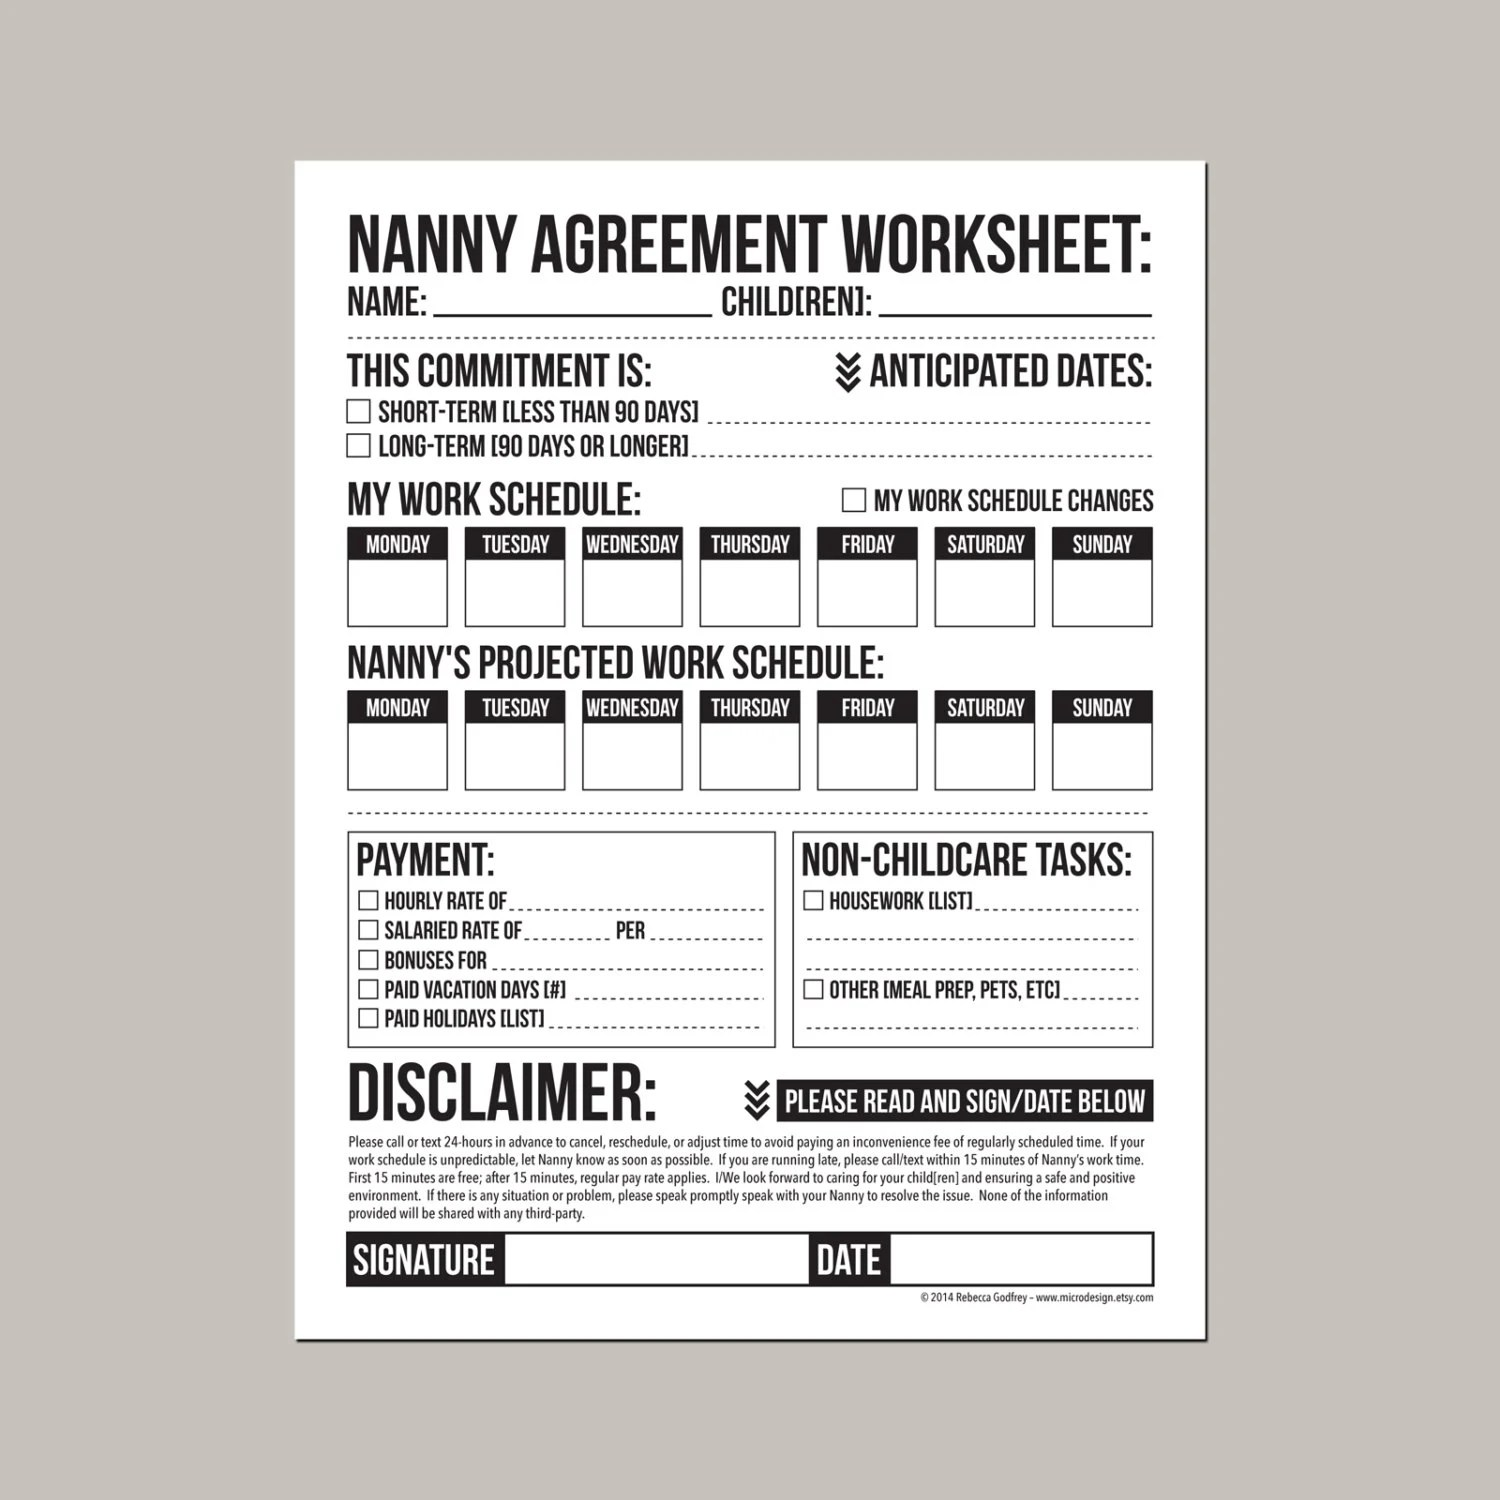 Nanny Agreement Worksheet Printable Sheet